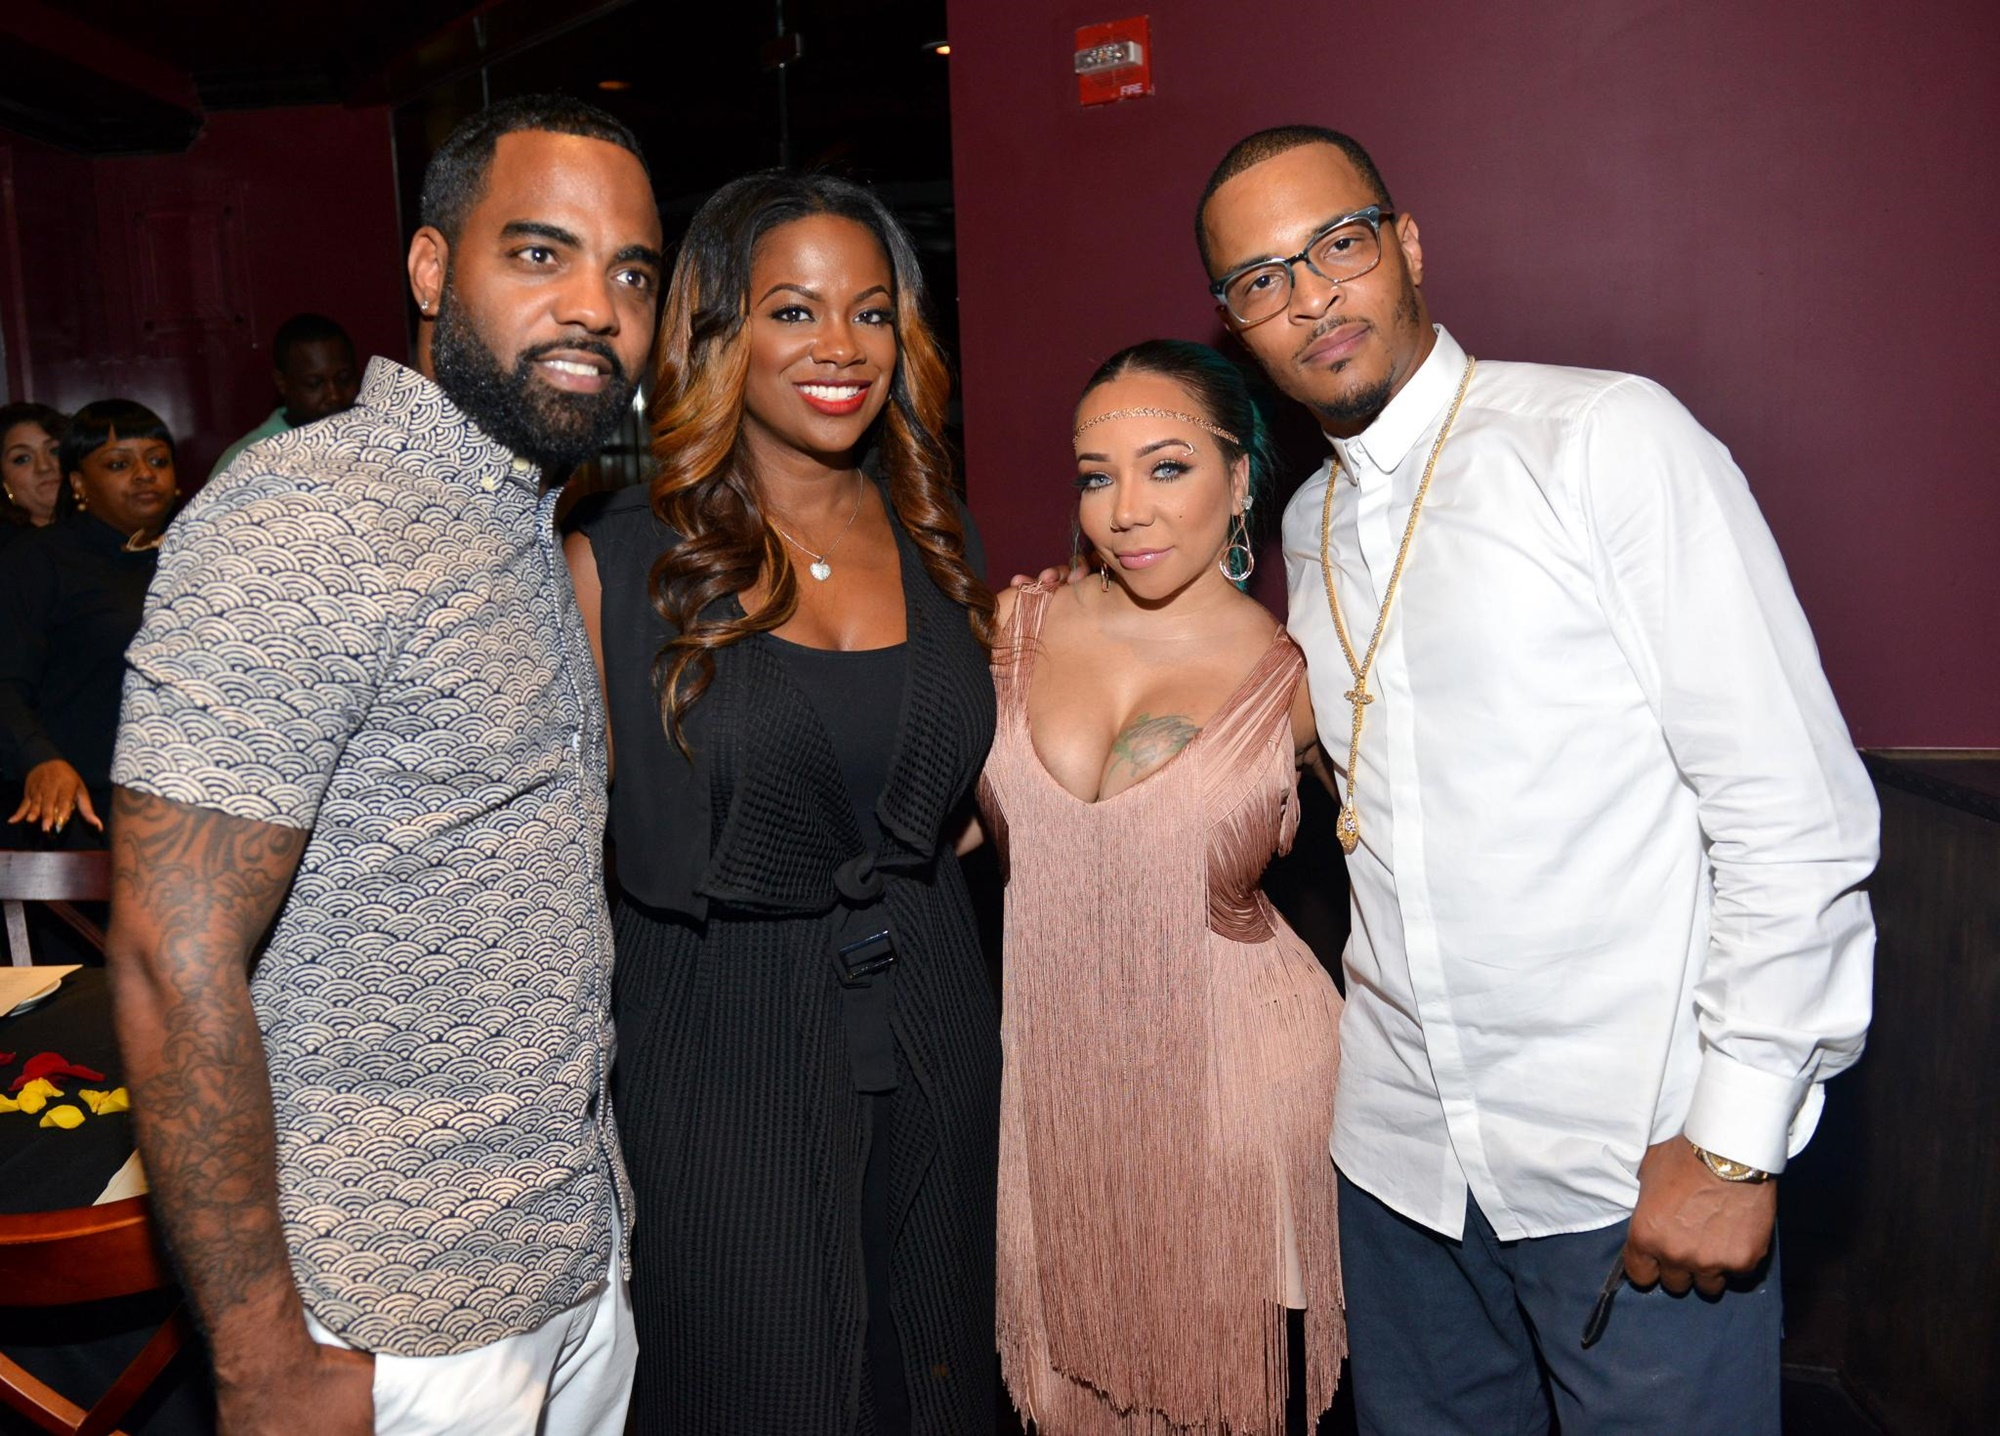 tiny-harris-and-kandi-burruss-reaffirm-their-amazing-friendship-by-taking-fans-down-memory-lane-with-never-before-seen-picture-and-inspirational-birthday-tribute-xcape-fans-want-t-i-s-wife-to-reu